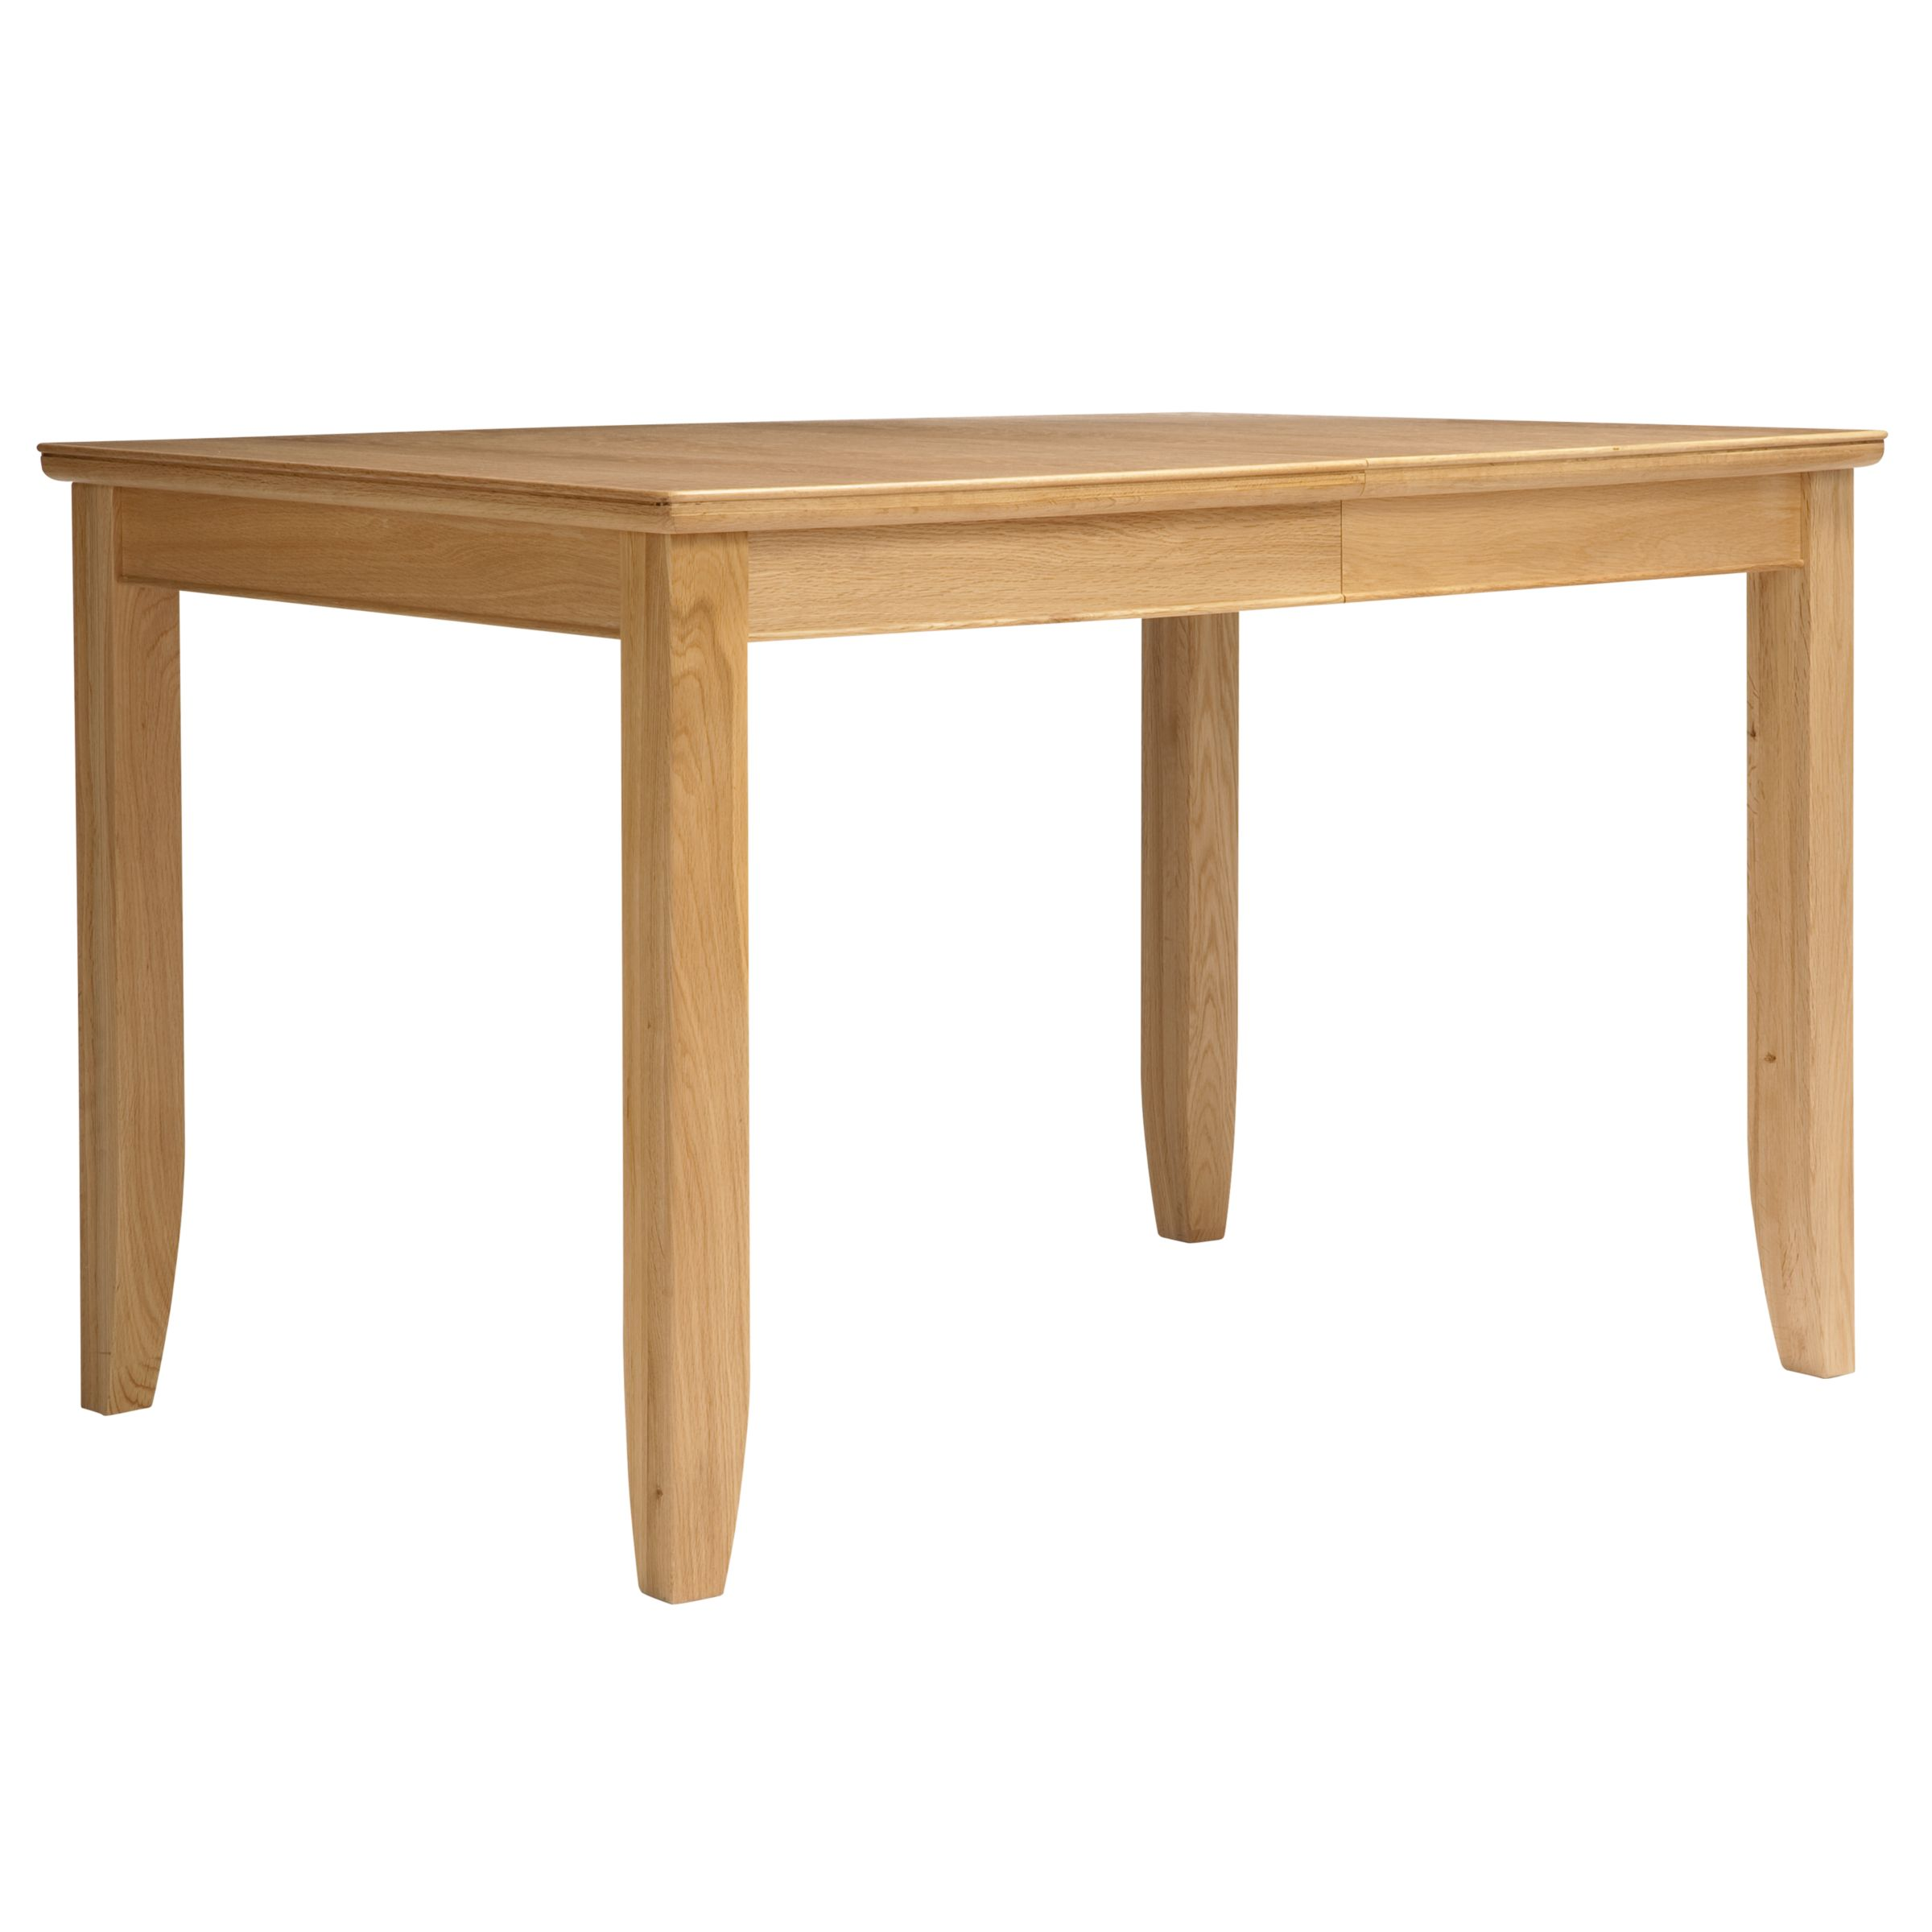 John lewis dining room furniture for Furniture john lewis